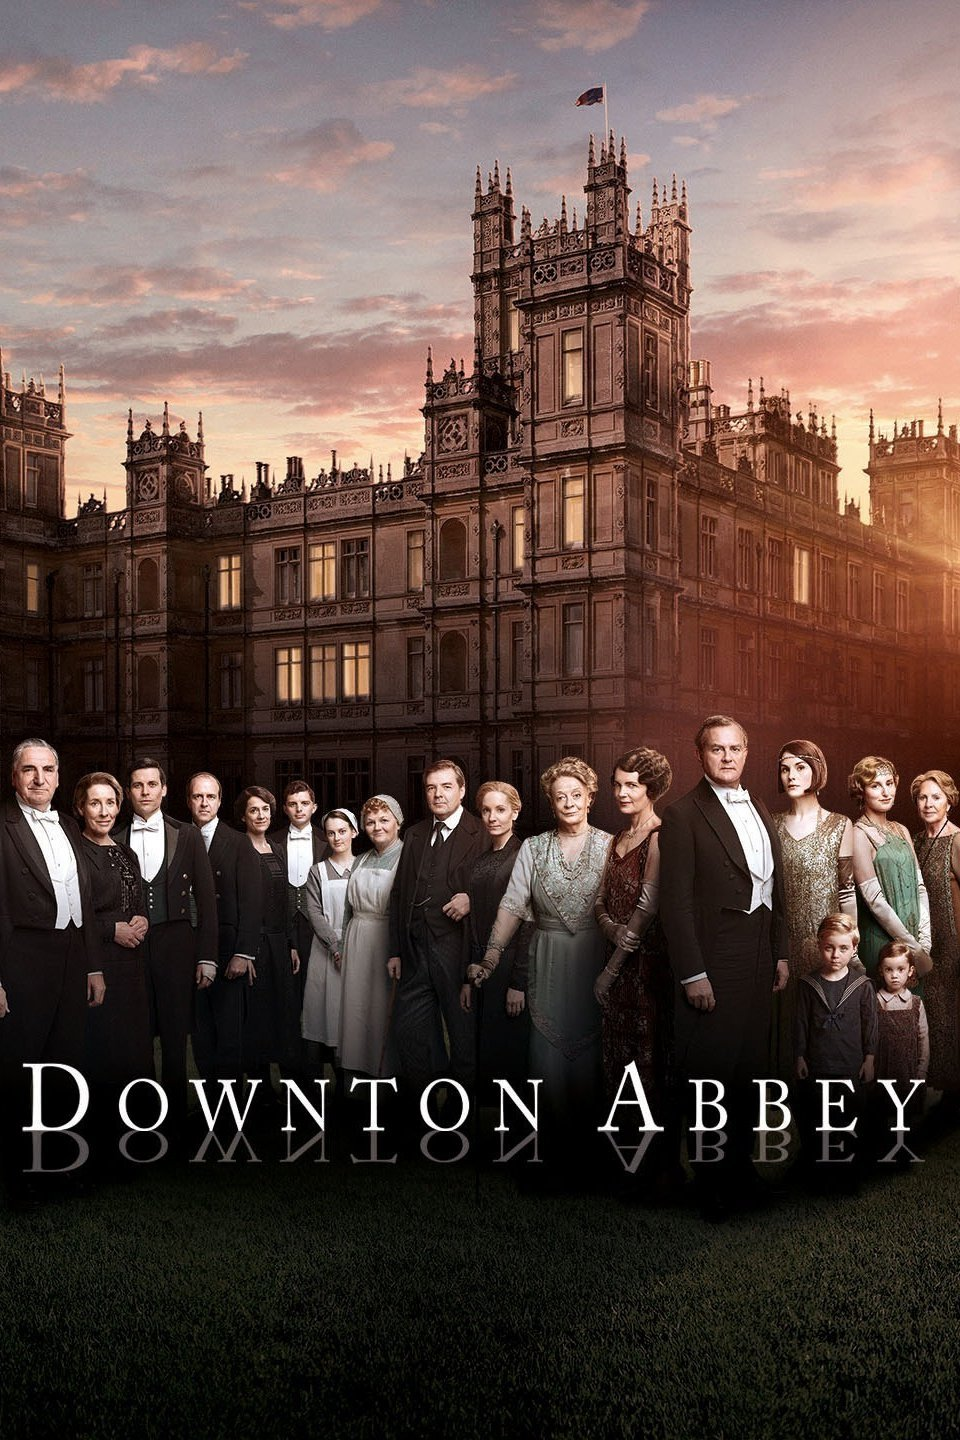 Downton Abbey, 2010